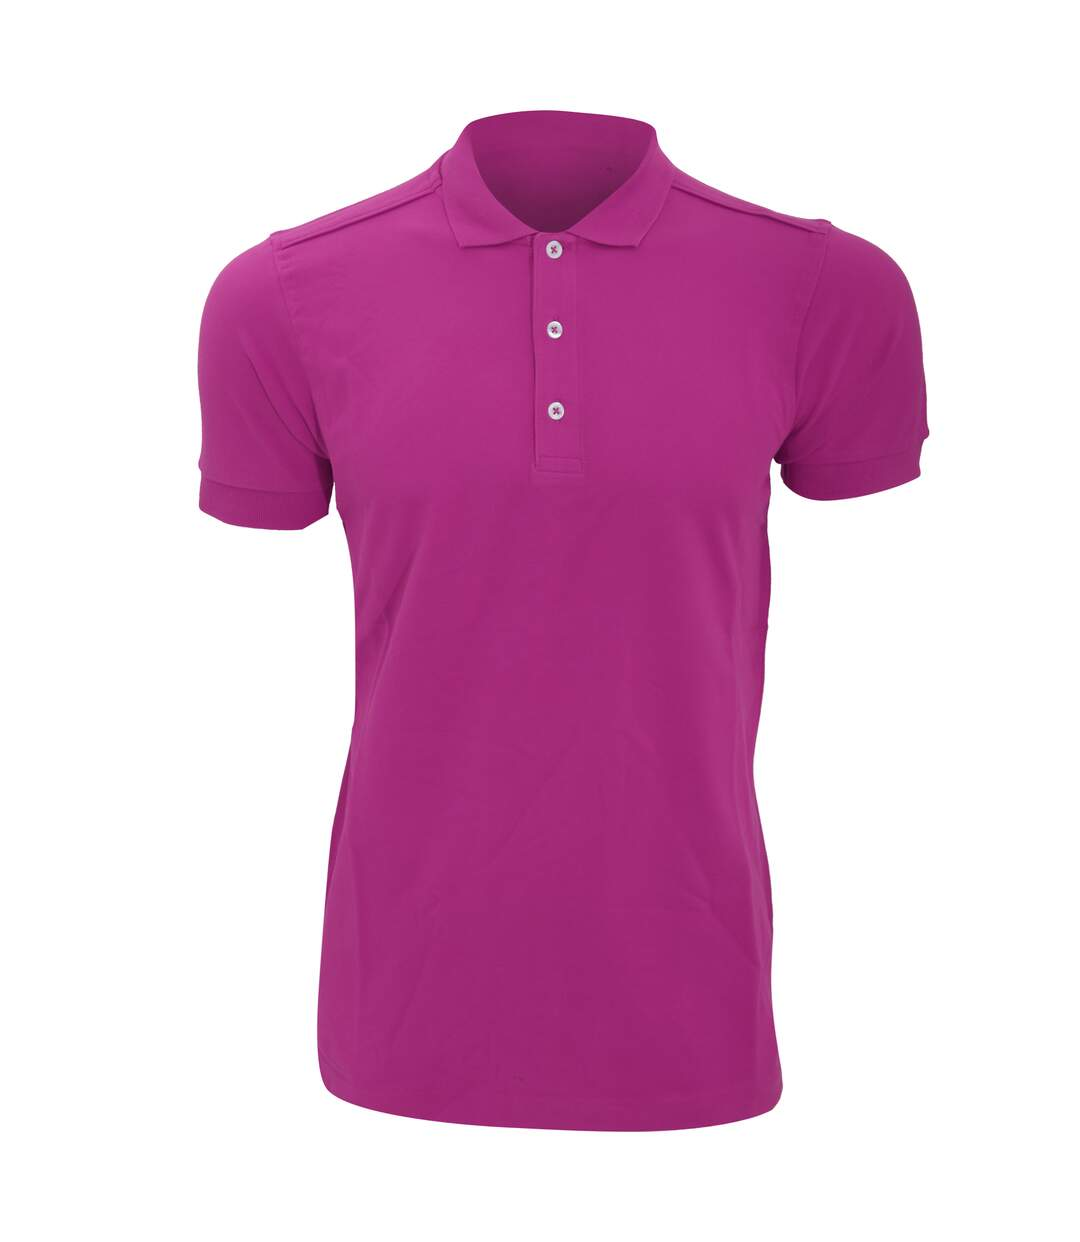 Russell Mens Stretch Short Sleeve Polo Shirt (French Navy) - UTBC3257